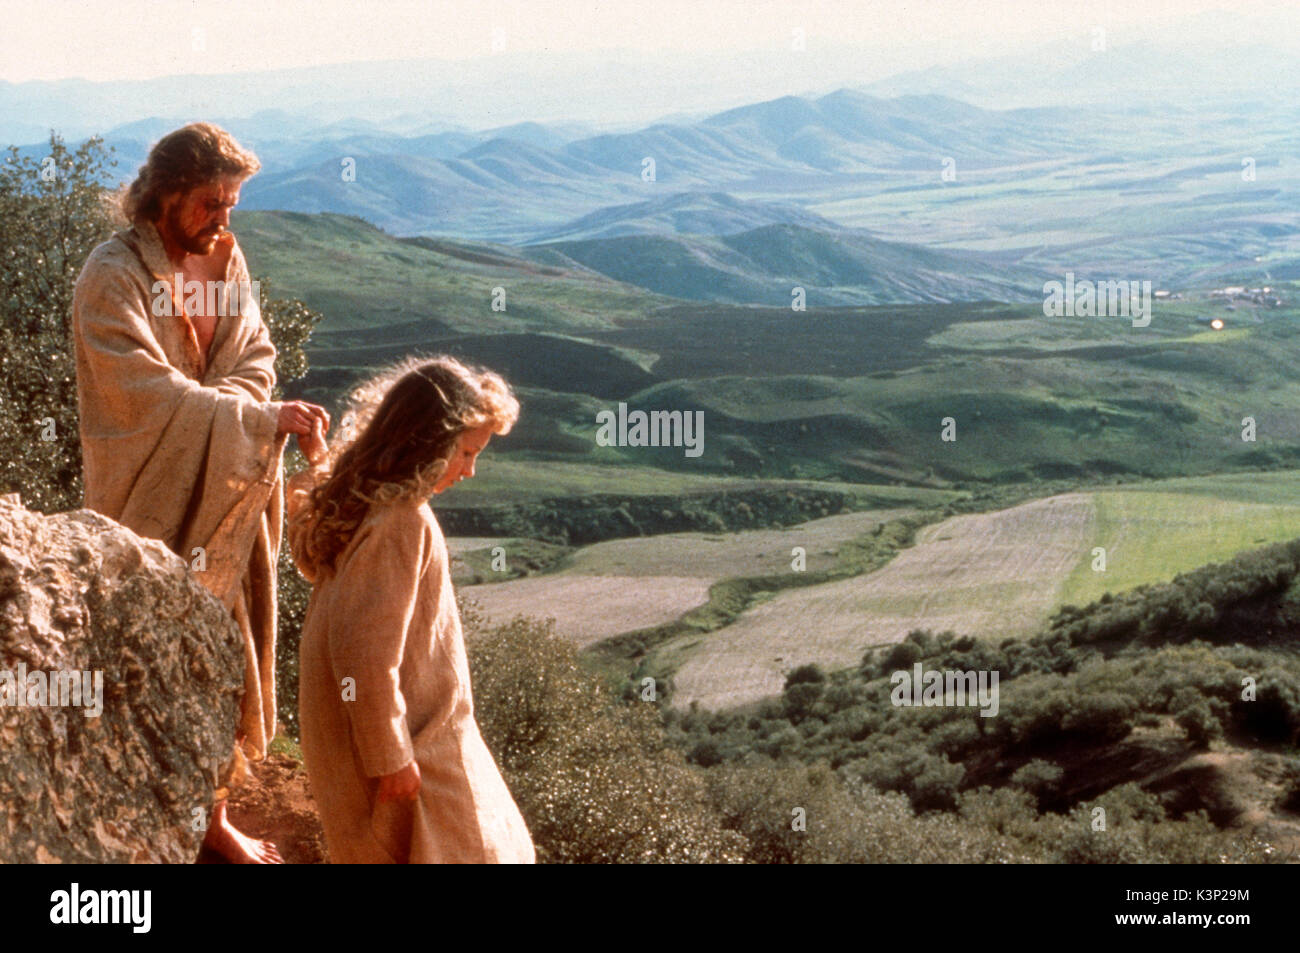 THE LAST TEMPTATION OF CHRIST [US / CAN 1988] WILLEM DAFOE as Jesus [left]     Date: 1988 - Stock Image